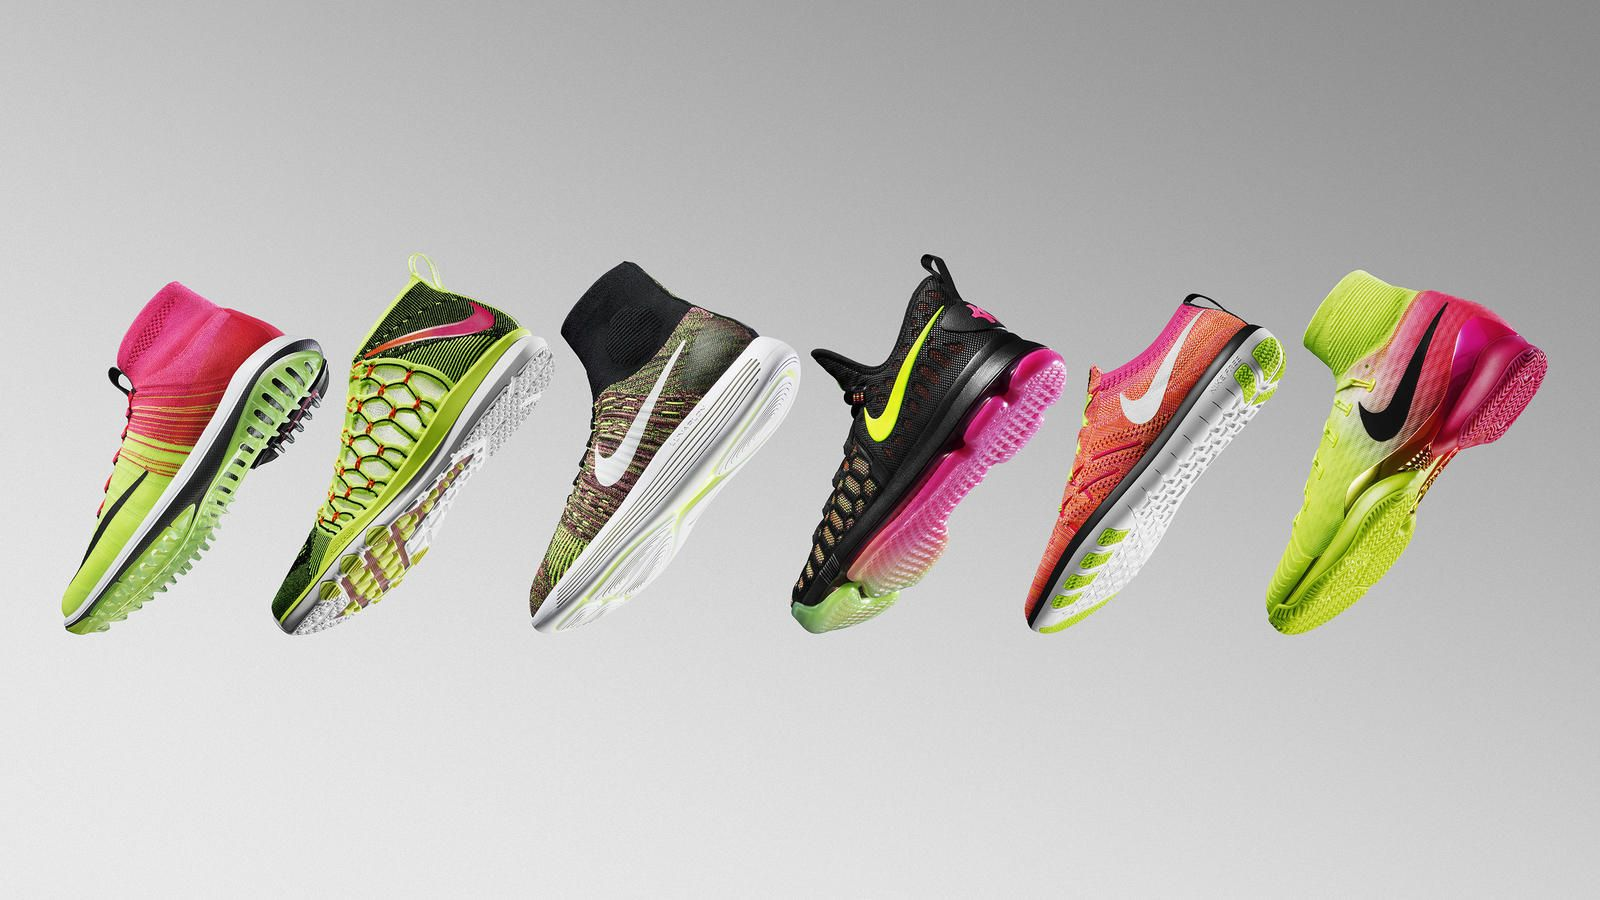 d04ccc6d8595 Nike News - Shades of Unlimited